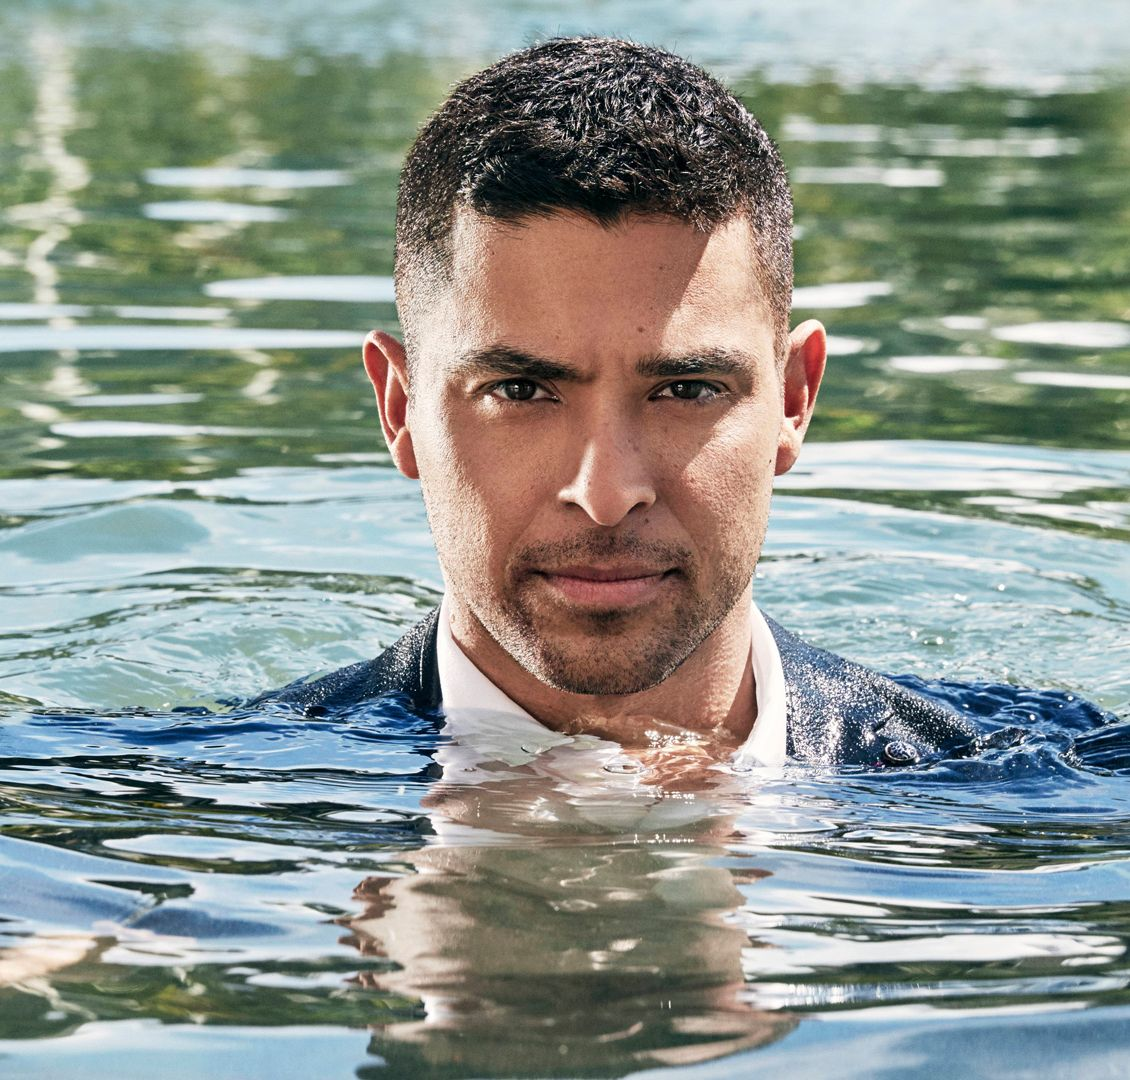 Wilmer Valderrama rises fully dressed from a swimming pool.